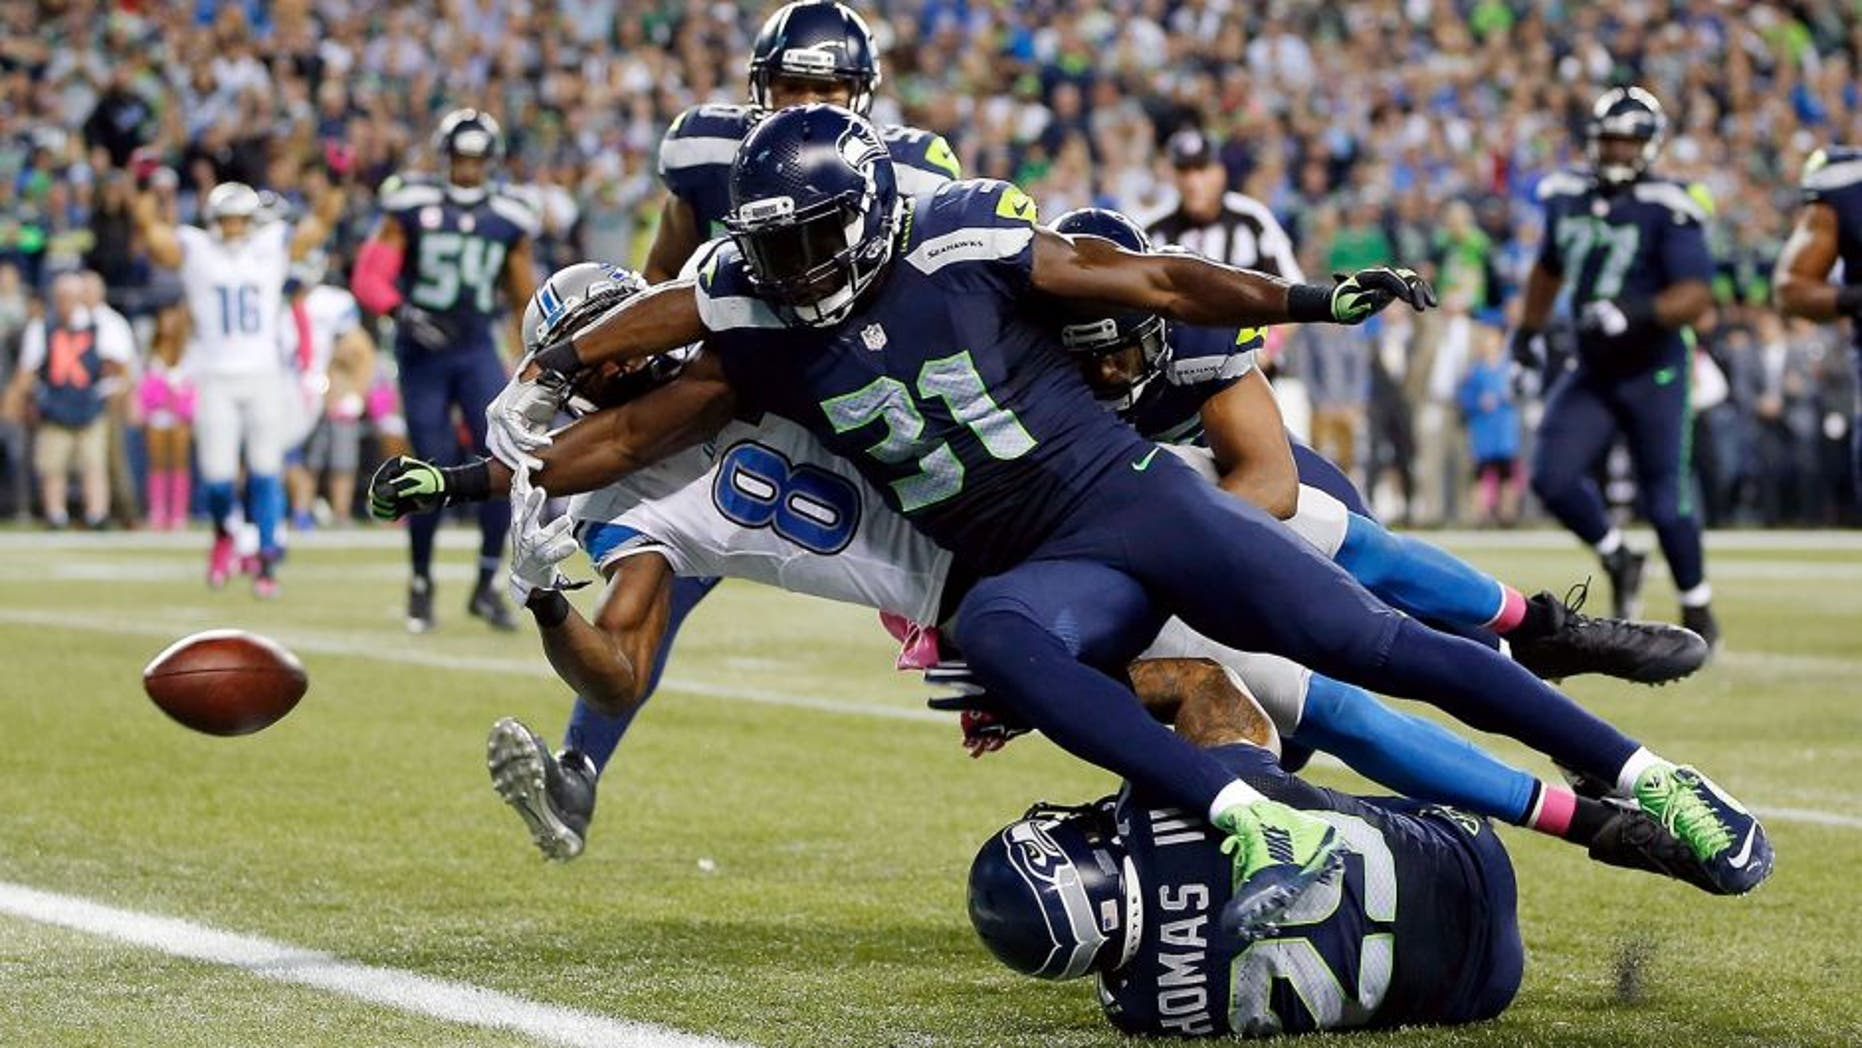 SEATTLE, WA - OCTOBER 05: Kam Chancellor #31 of the Seattle Seahawks forces Calvin Johnson #81 of the Detroit Lions to fumble the ball near the goal line during the fourth quarter of their game at CenturyLink Field on October 5, 2015 in Seattle, Washington. (Photo by Otto Greule Jr/Getty Images)